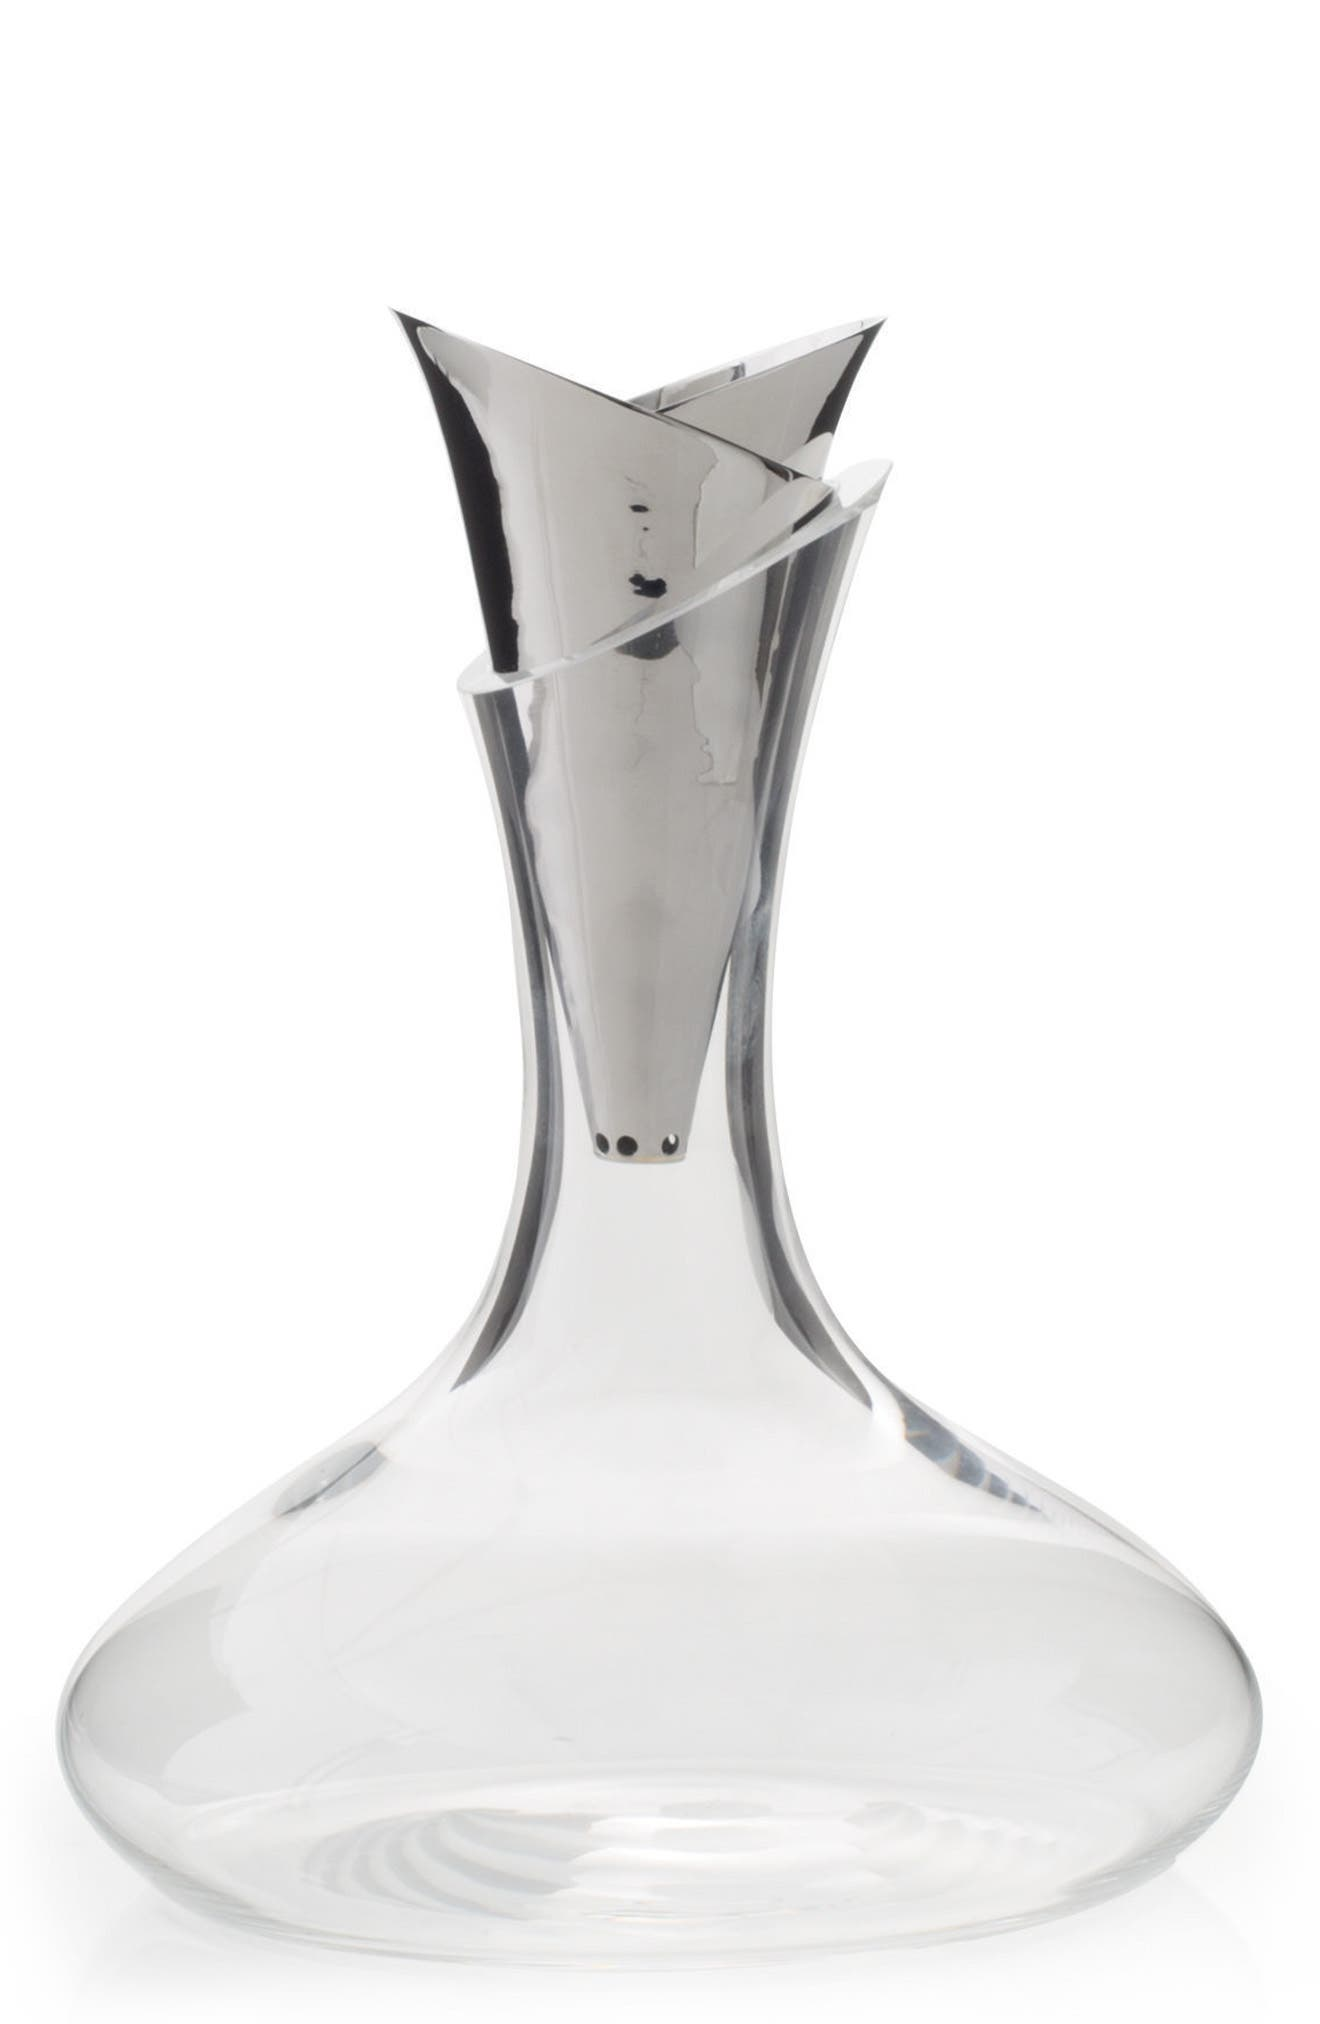 Ripple Effect Decanter,                         Main,                         color, Ripple Effect